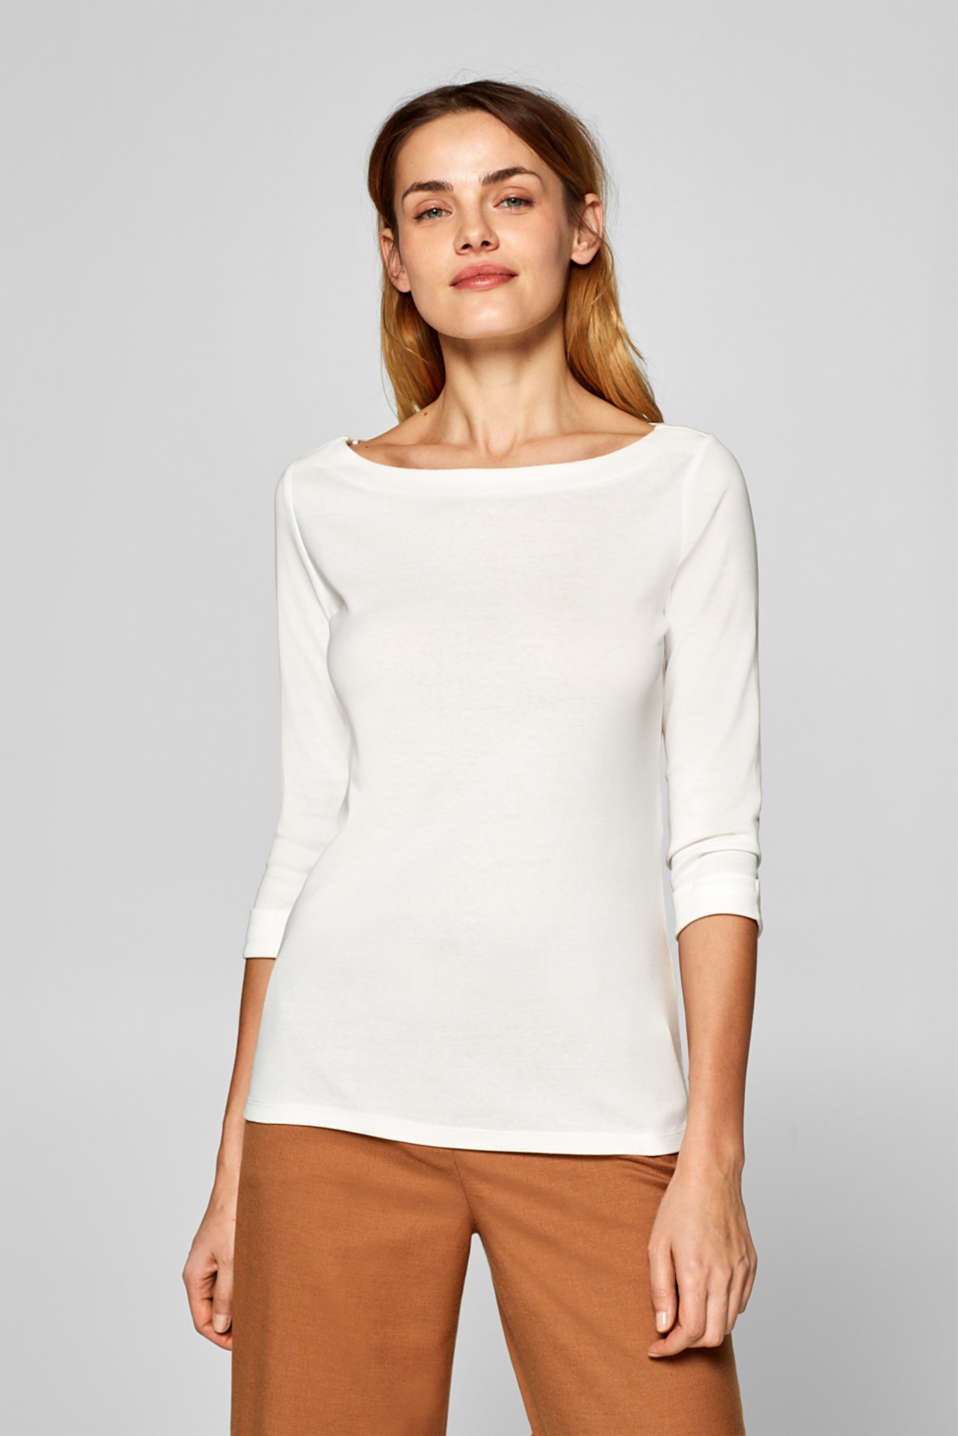 Esprit - 100% cotton T-shirt containing organic cotton